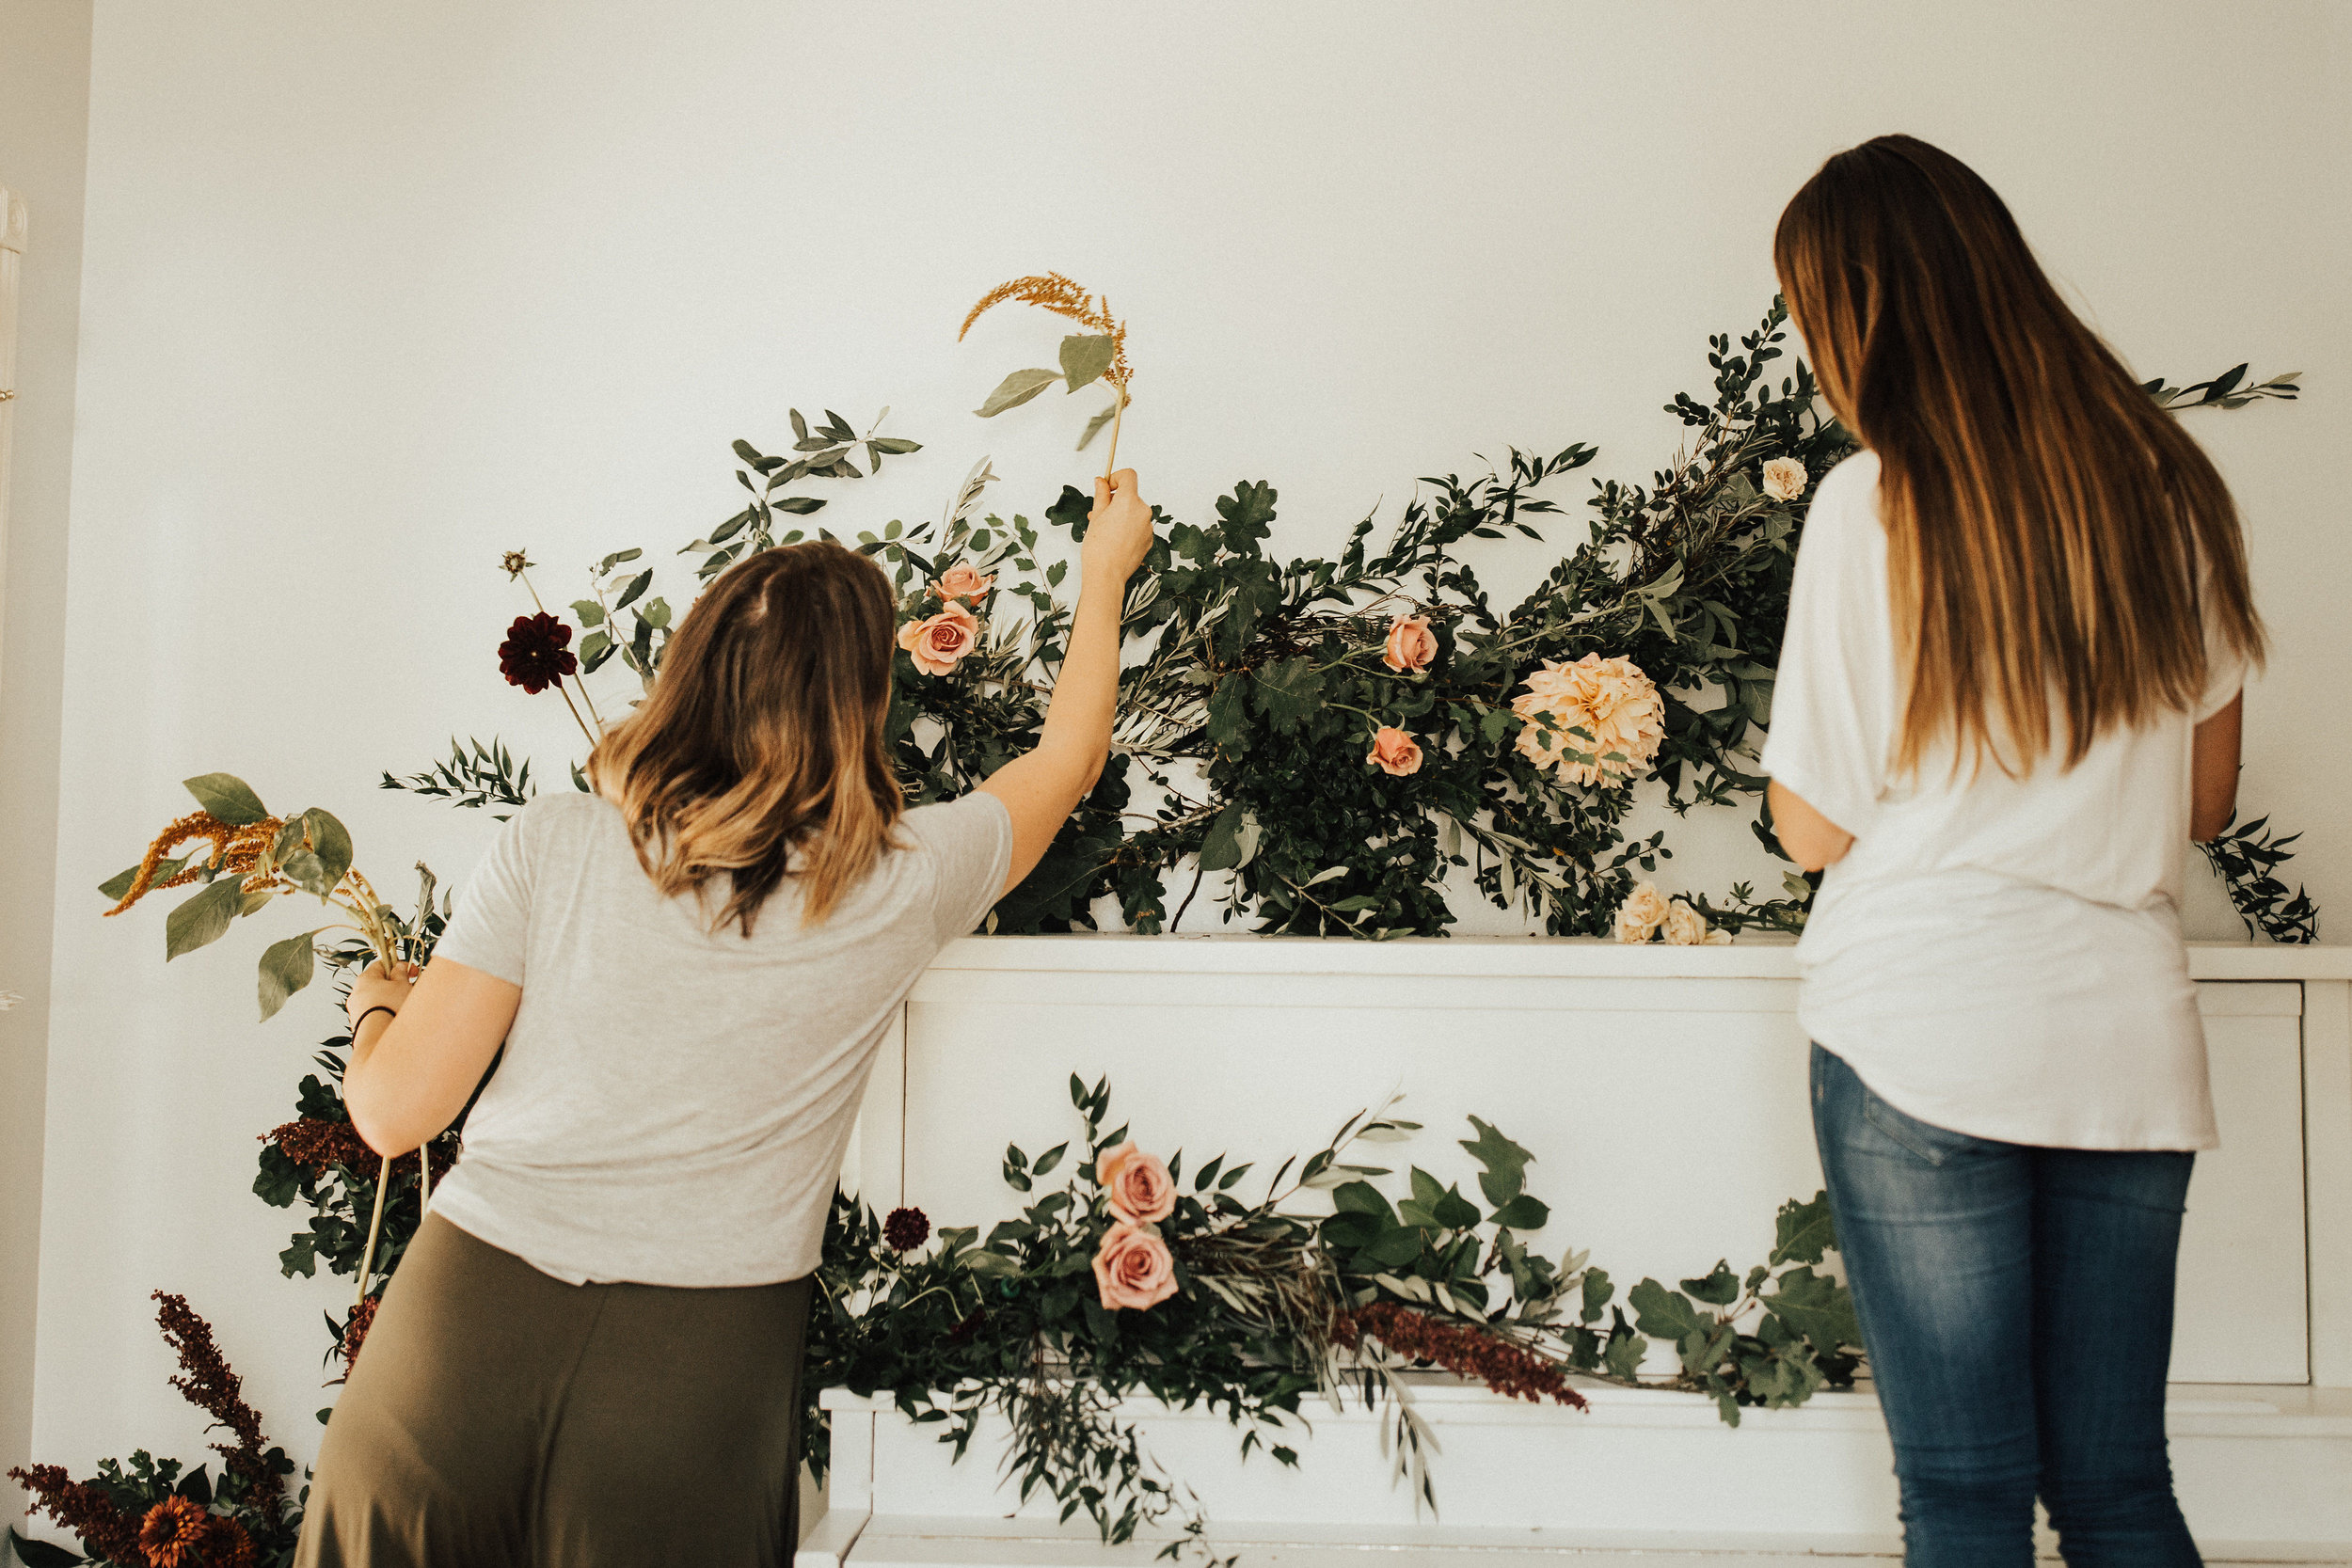 placing flowers in the greenery